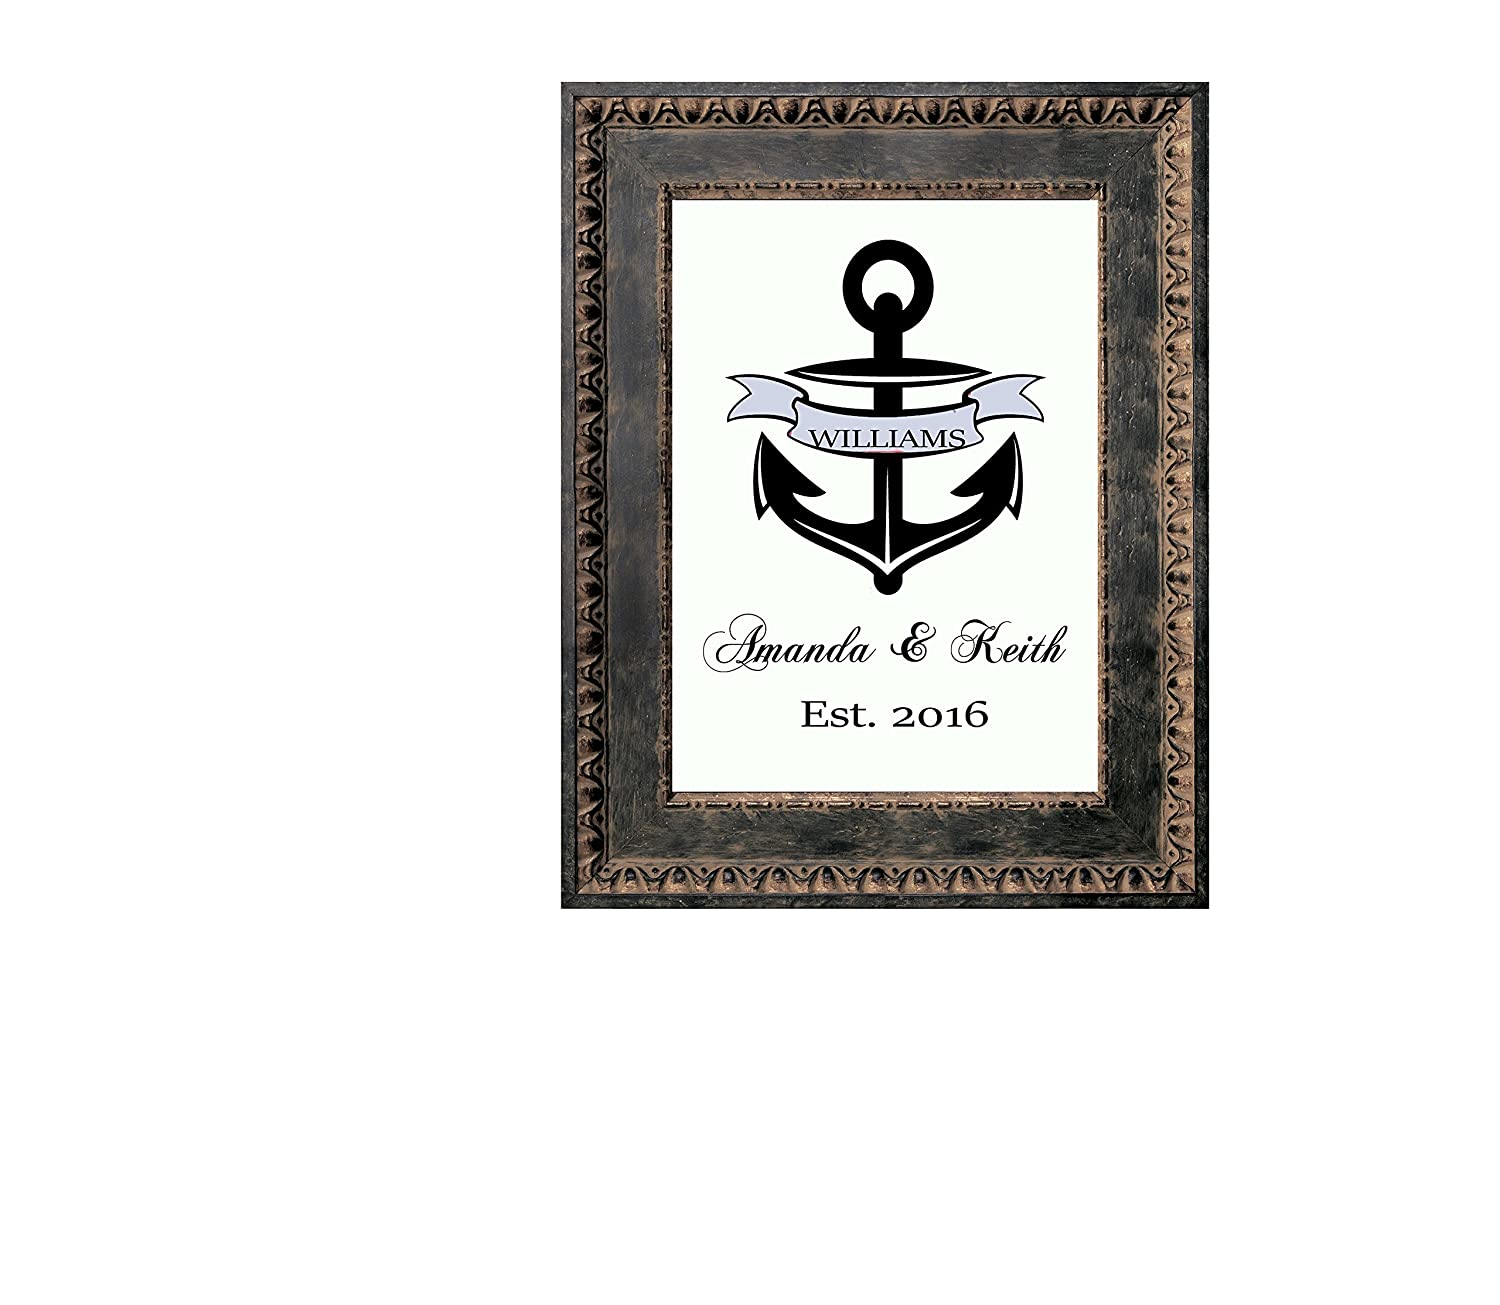 Nautical Anchor Canvas art, Custom Last name and date. Lovely Gift for Wedding or Anniversary. Sailor Theme Decor. Unframed.